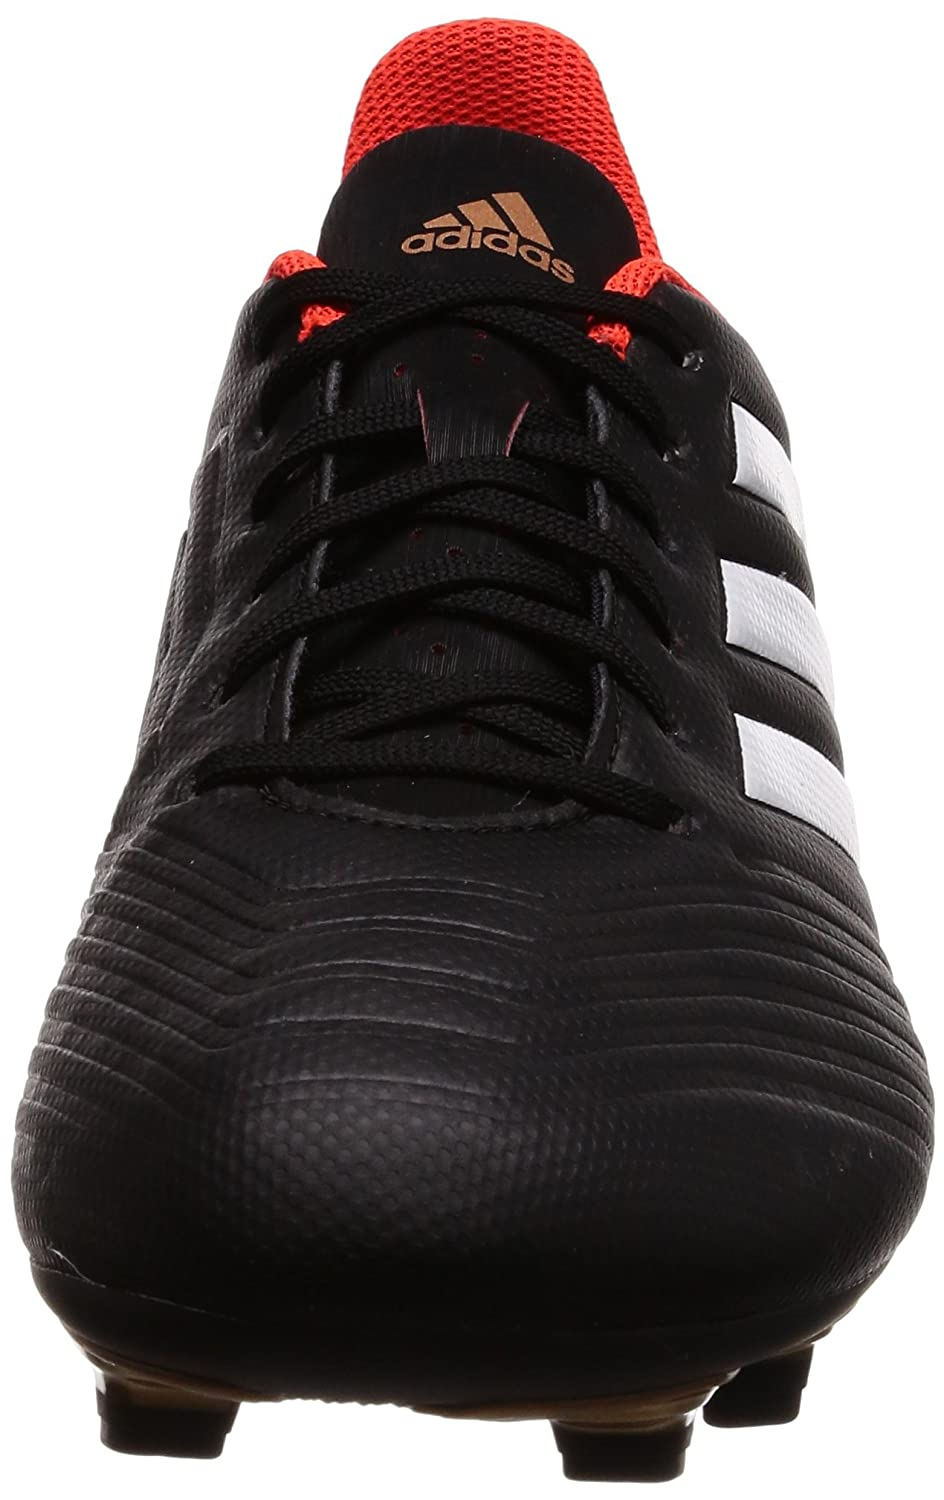 83fa4a58beaf Adidas Men s Predator 18.4 FxG Cblack Ftwwht Solred Football Boots - 9  UK India (43.33 EU)(CP9265)  Buy Online at Low Prices in India - Amazon.in